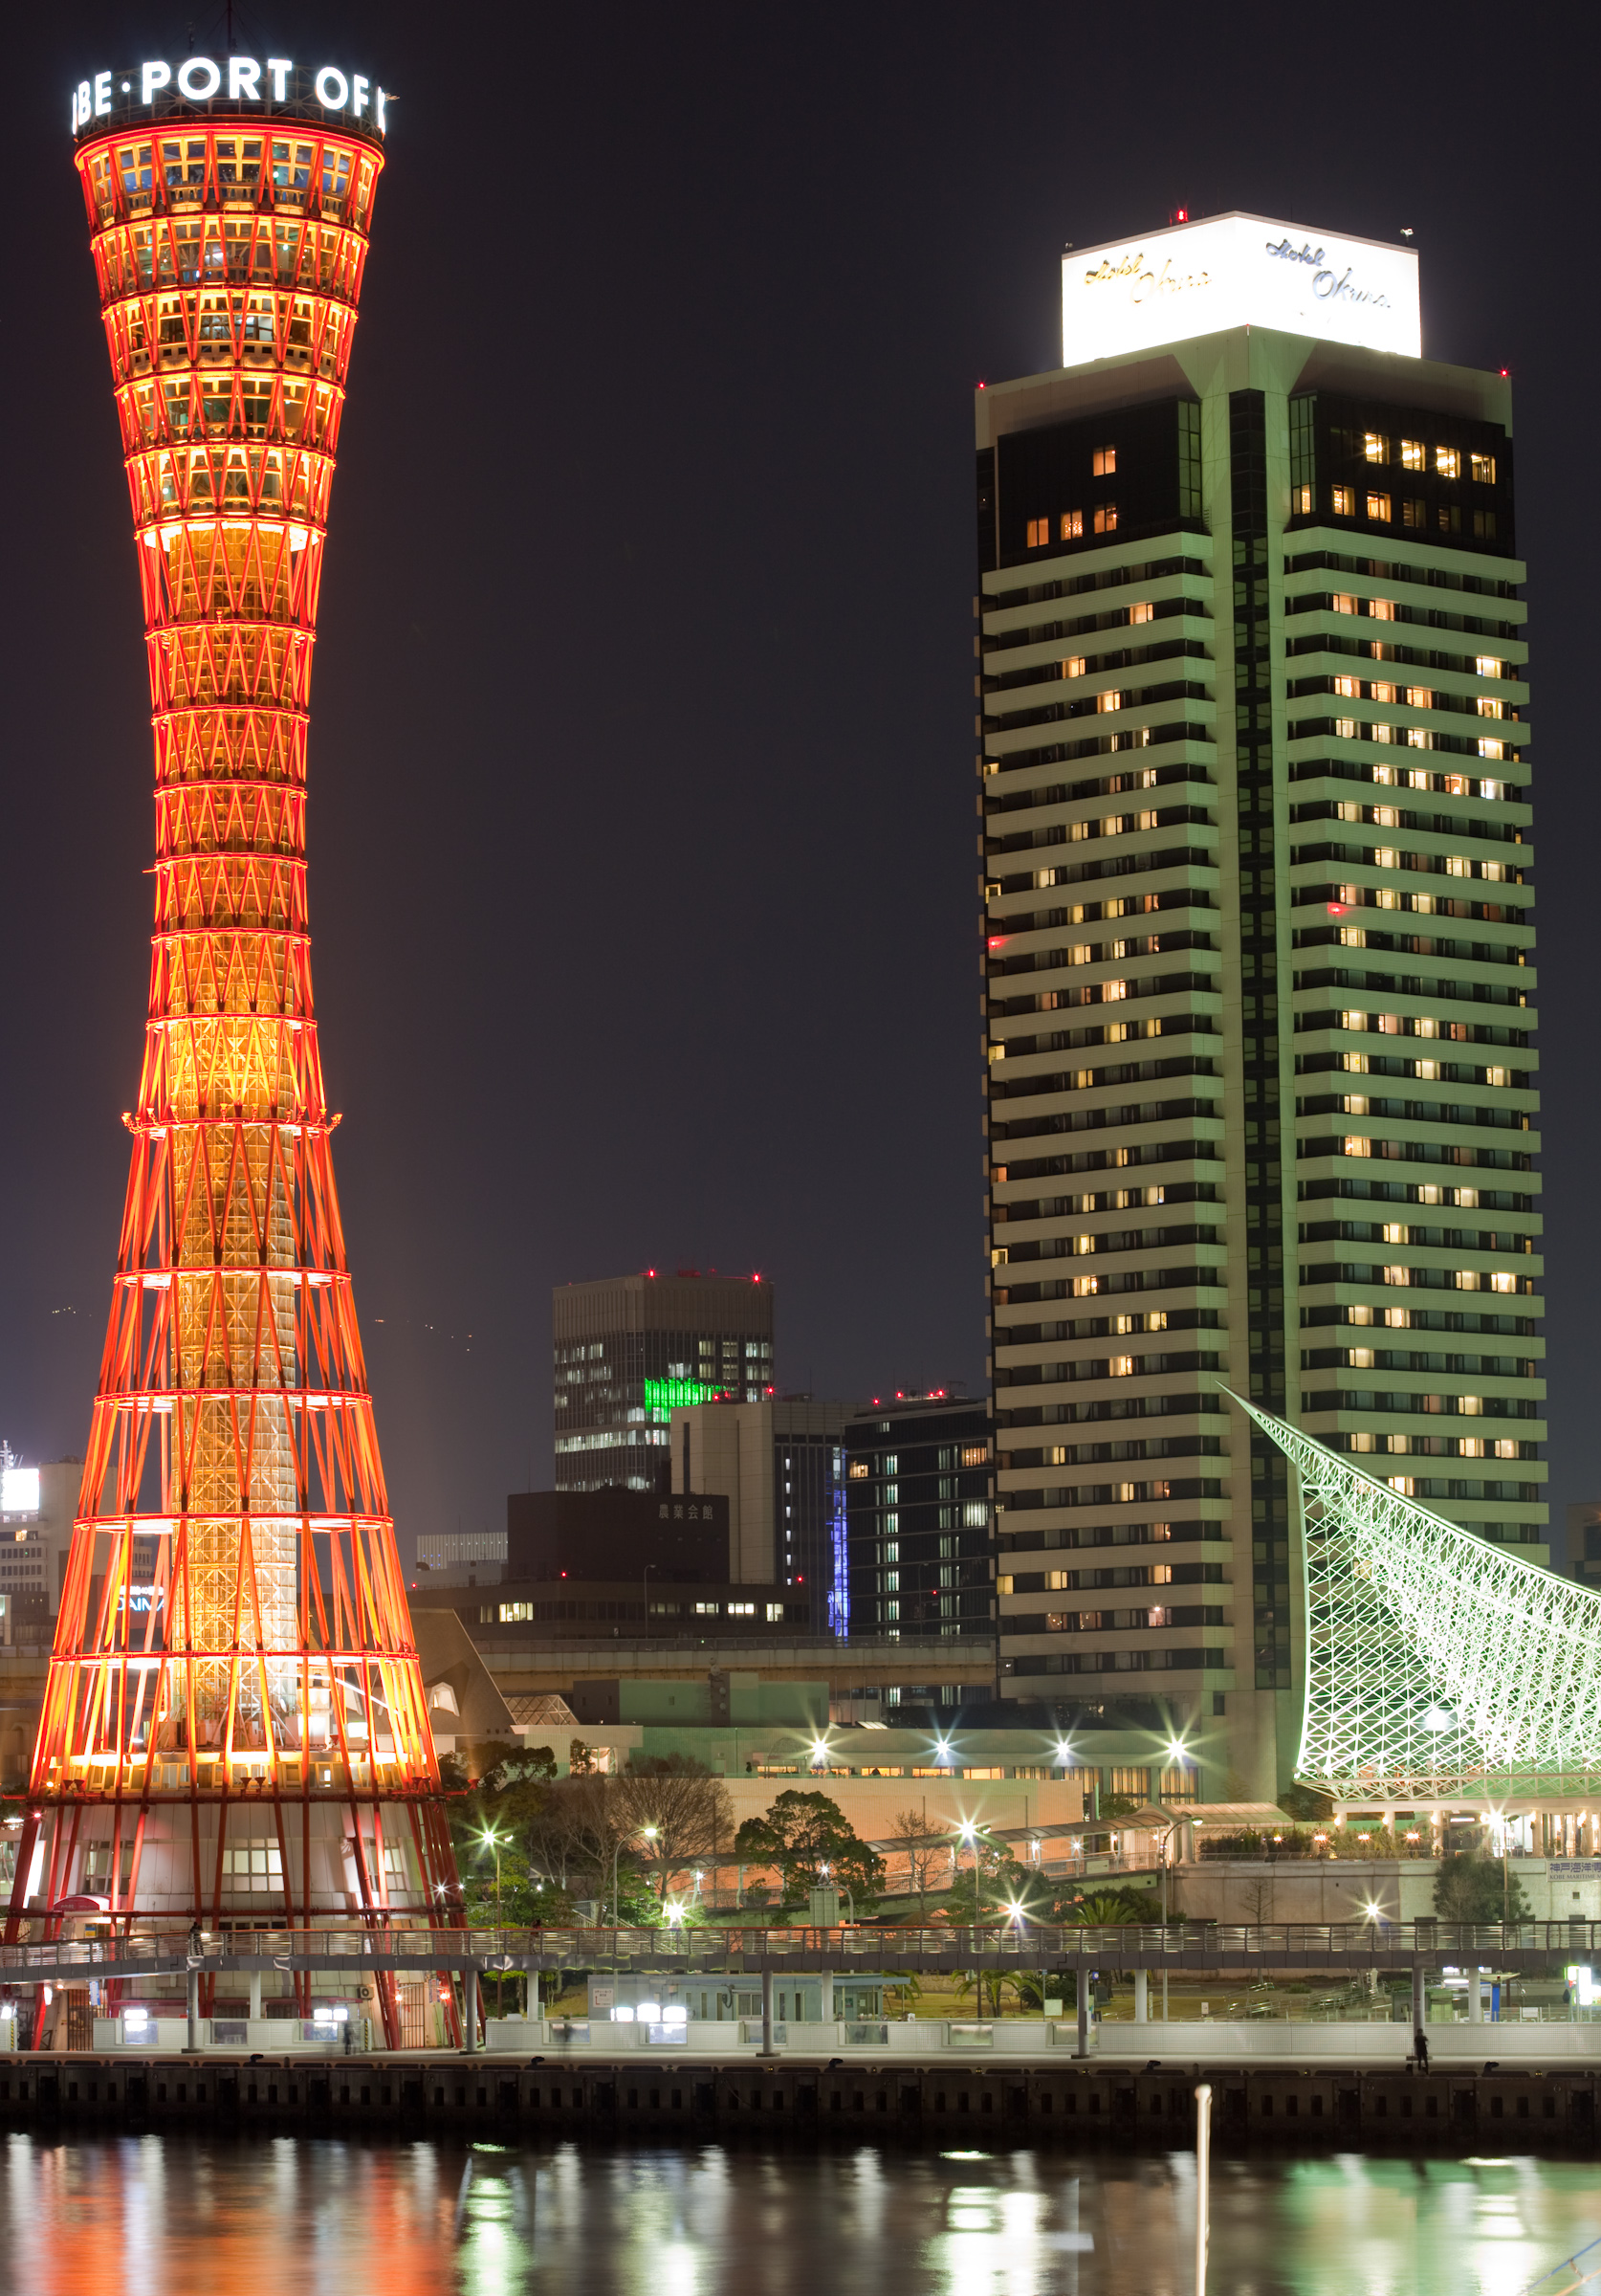 File:Kobe Port tower and Hotel Okura at night.jpg